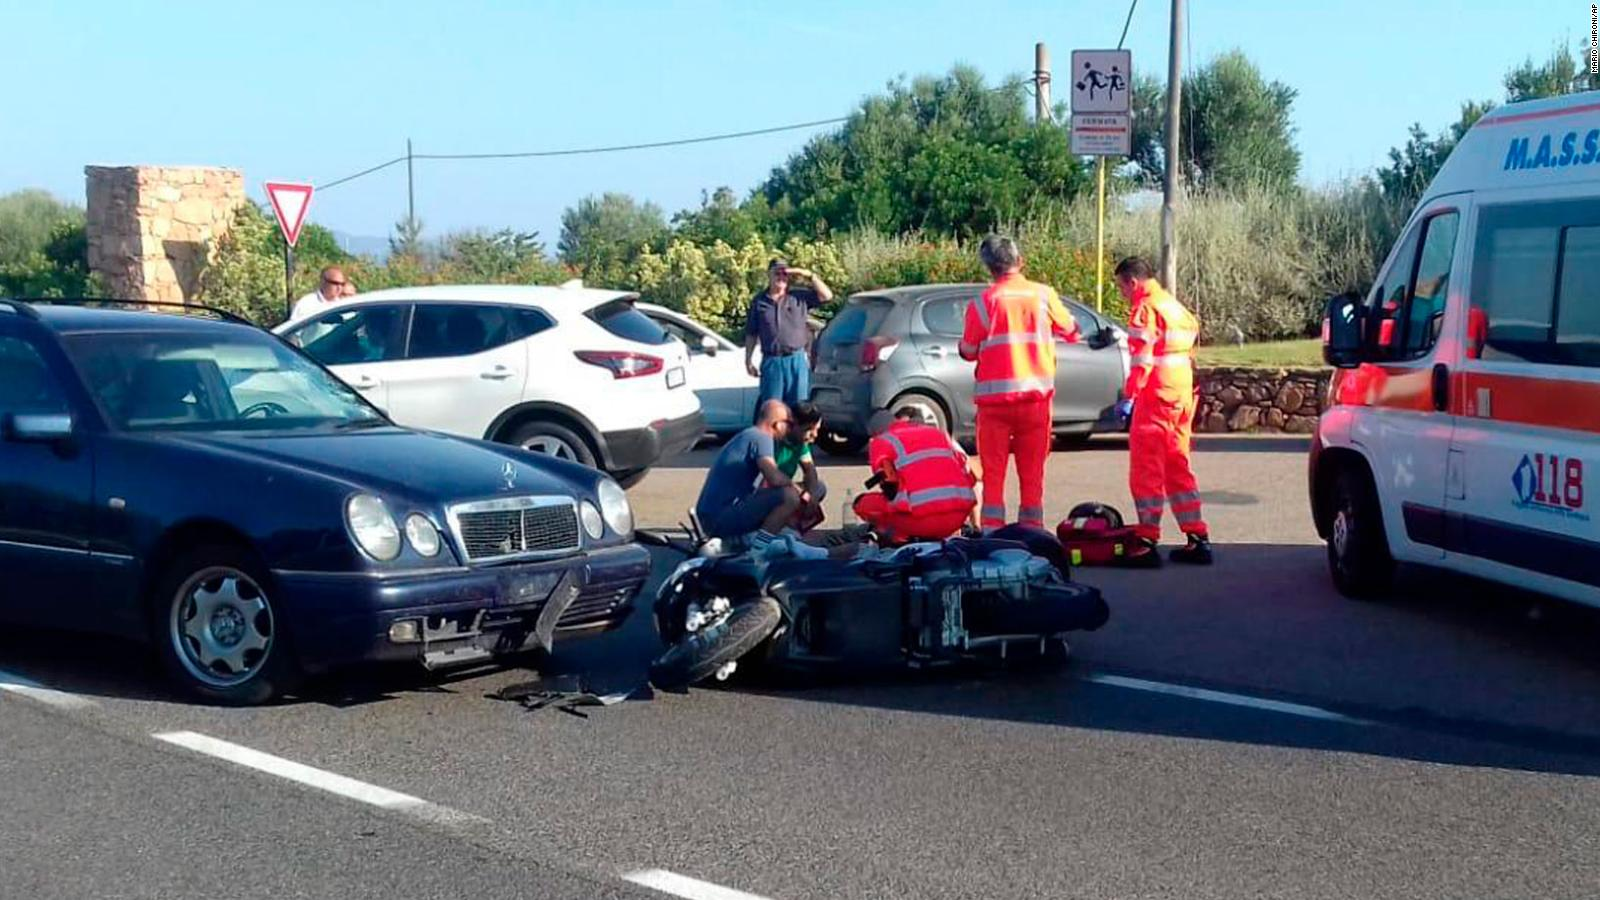 George Clooney involved in scooter accident in Italy   CNN 1600x900